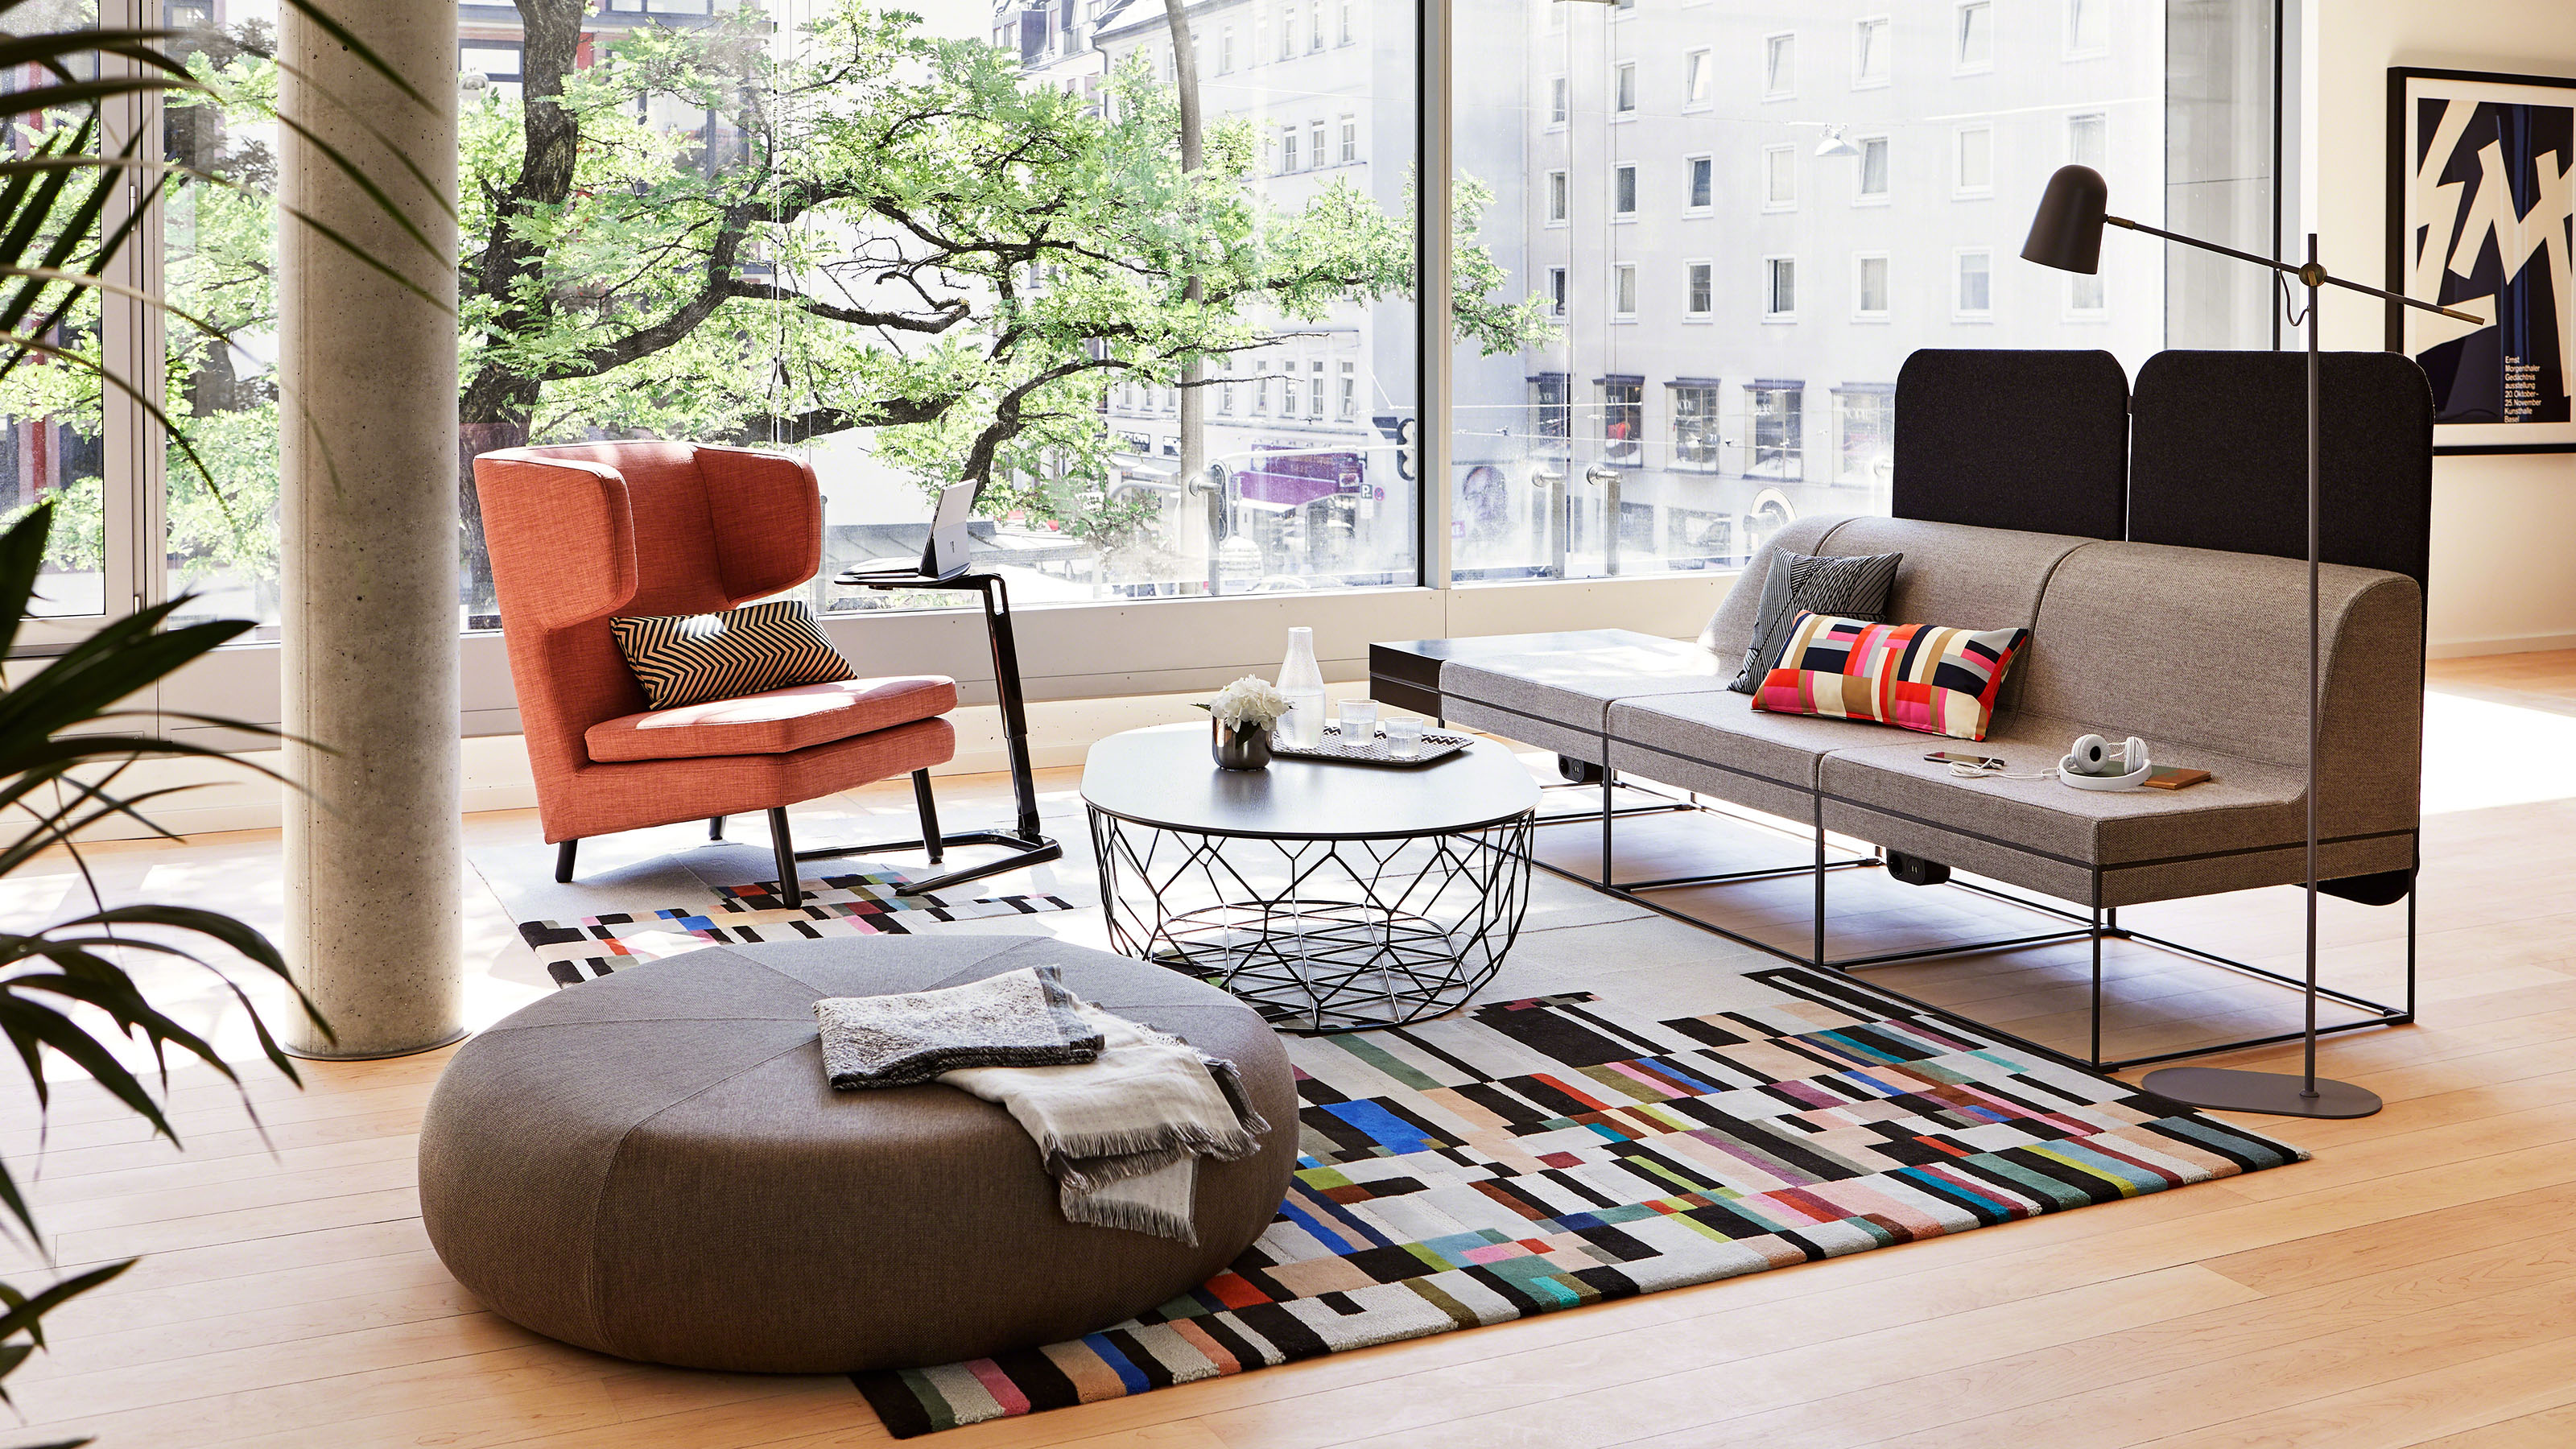 Steelcase Bolia Deliver More Choices at Work Steelcase